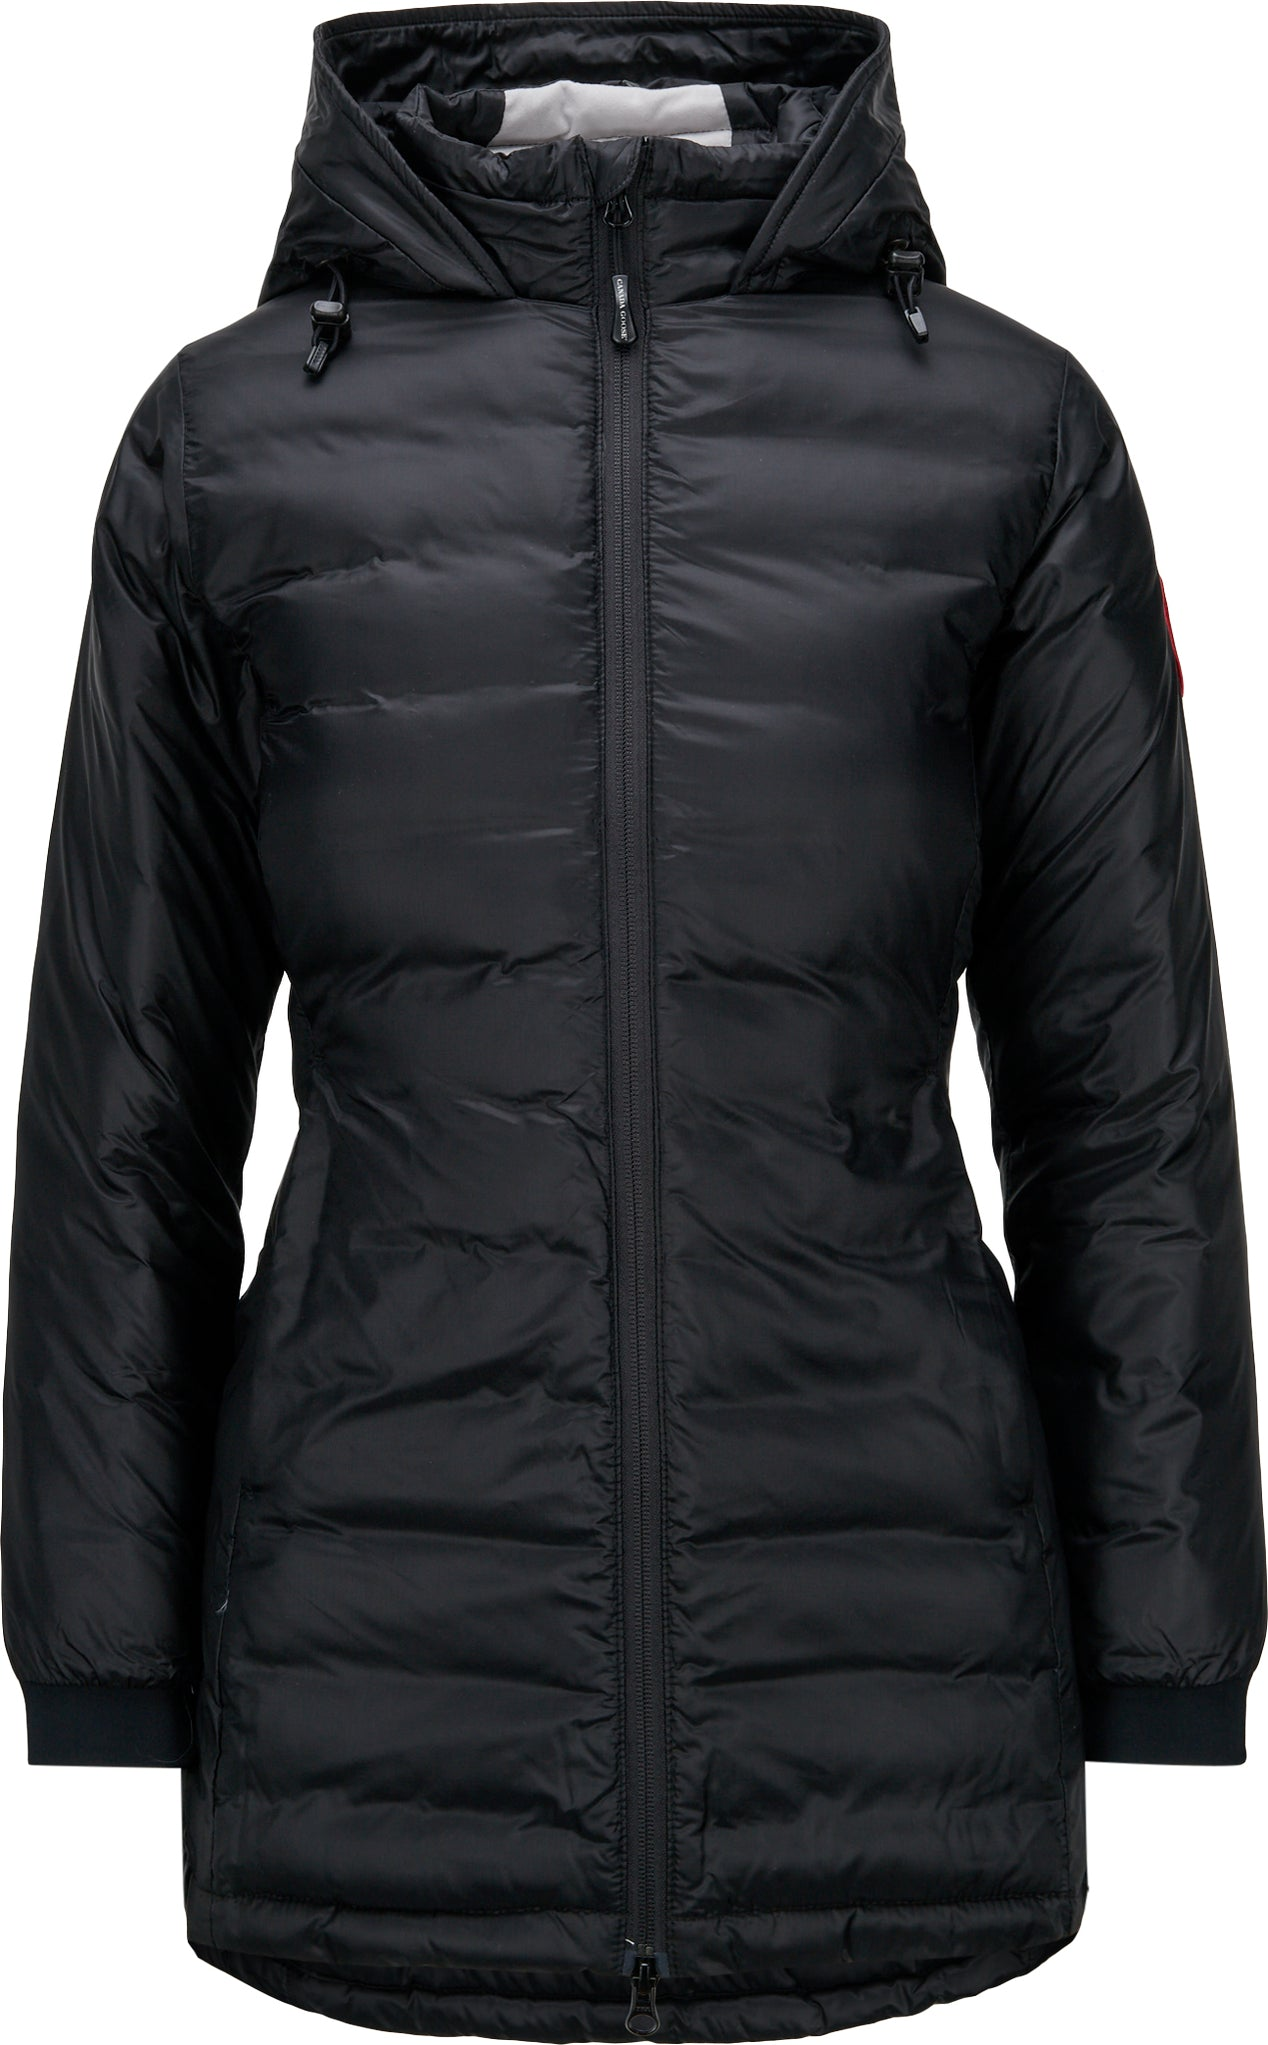 4bc962b7f27f8 Camp Down Hooded Jacket - Fusion Fit - Women s Black - Black ...